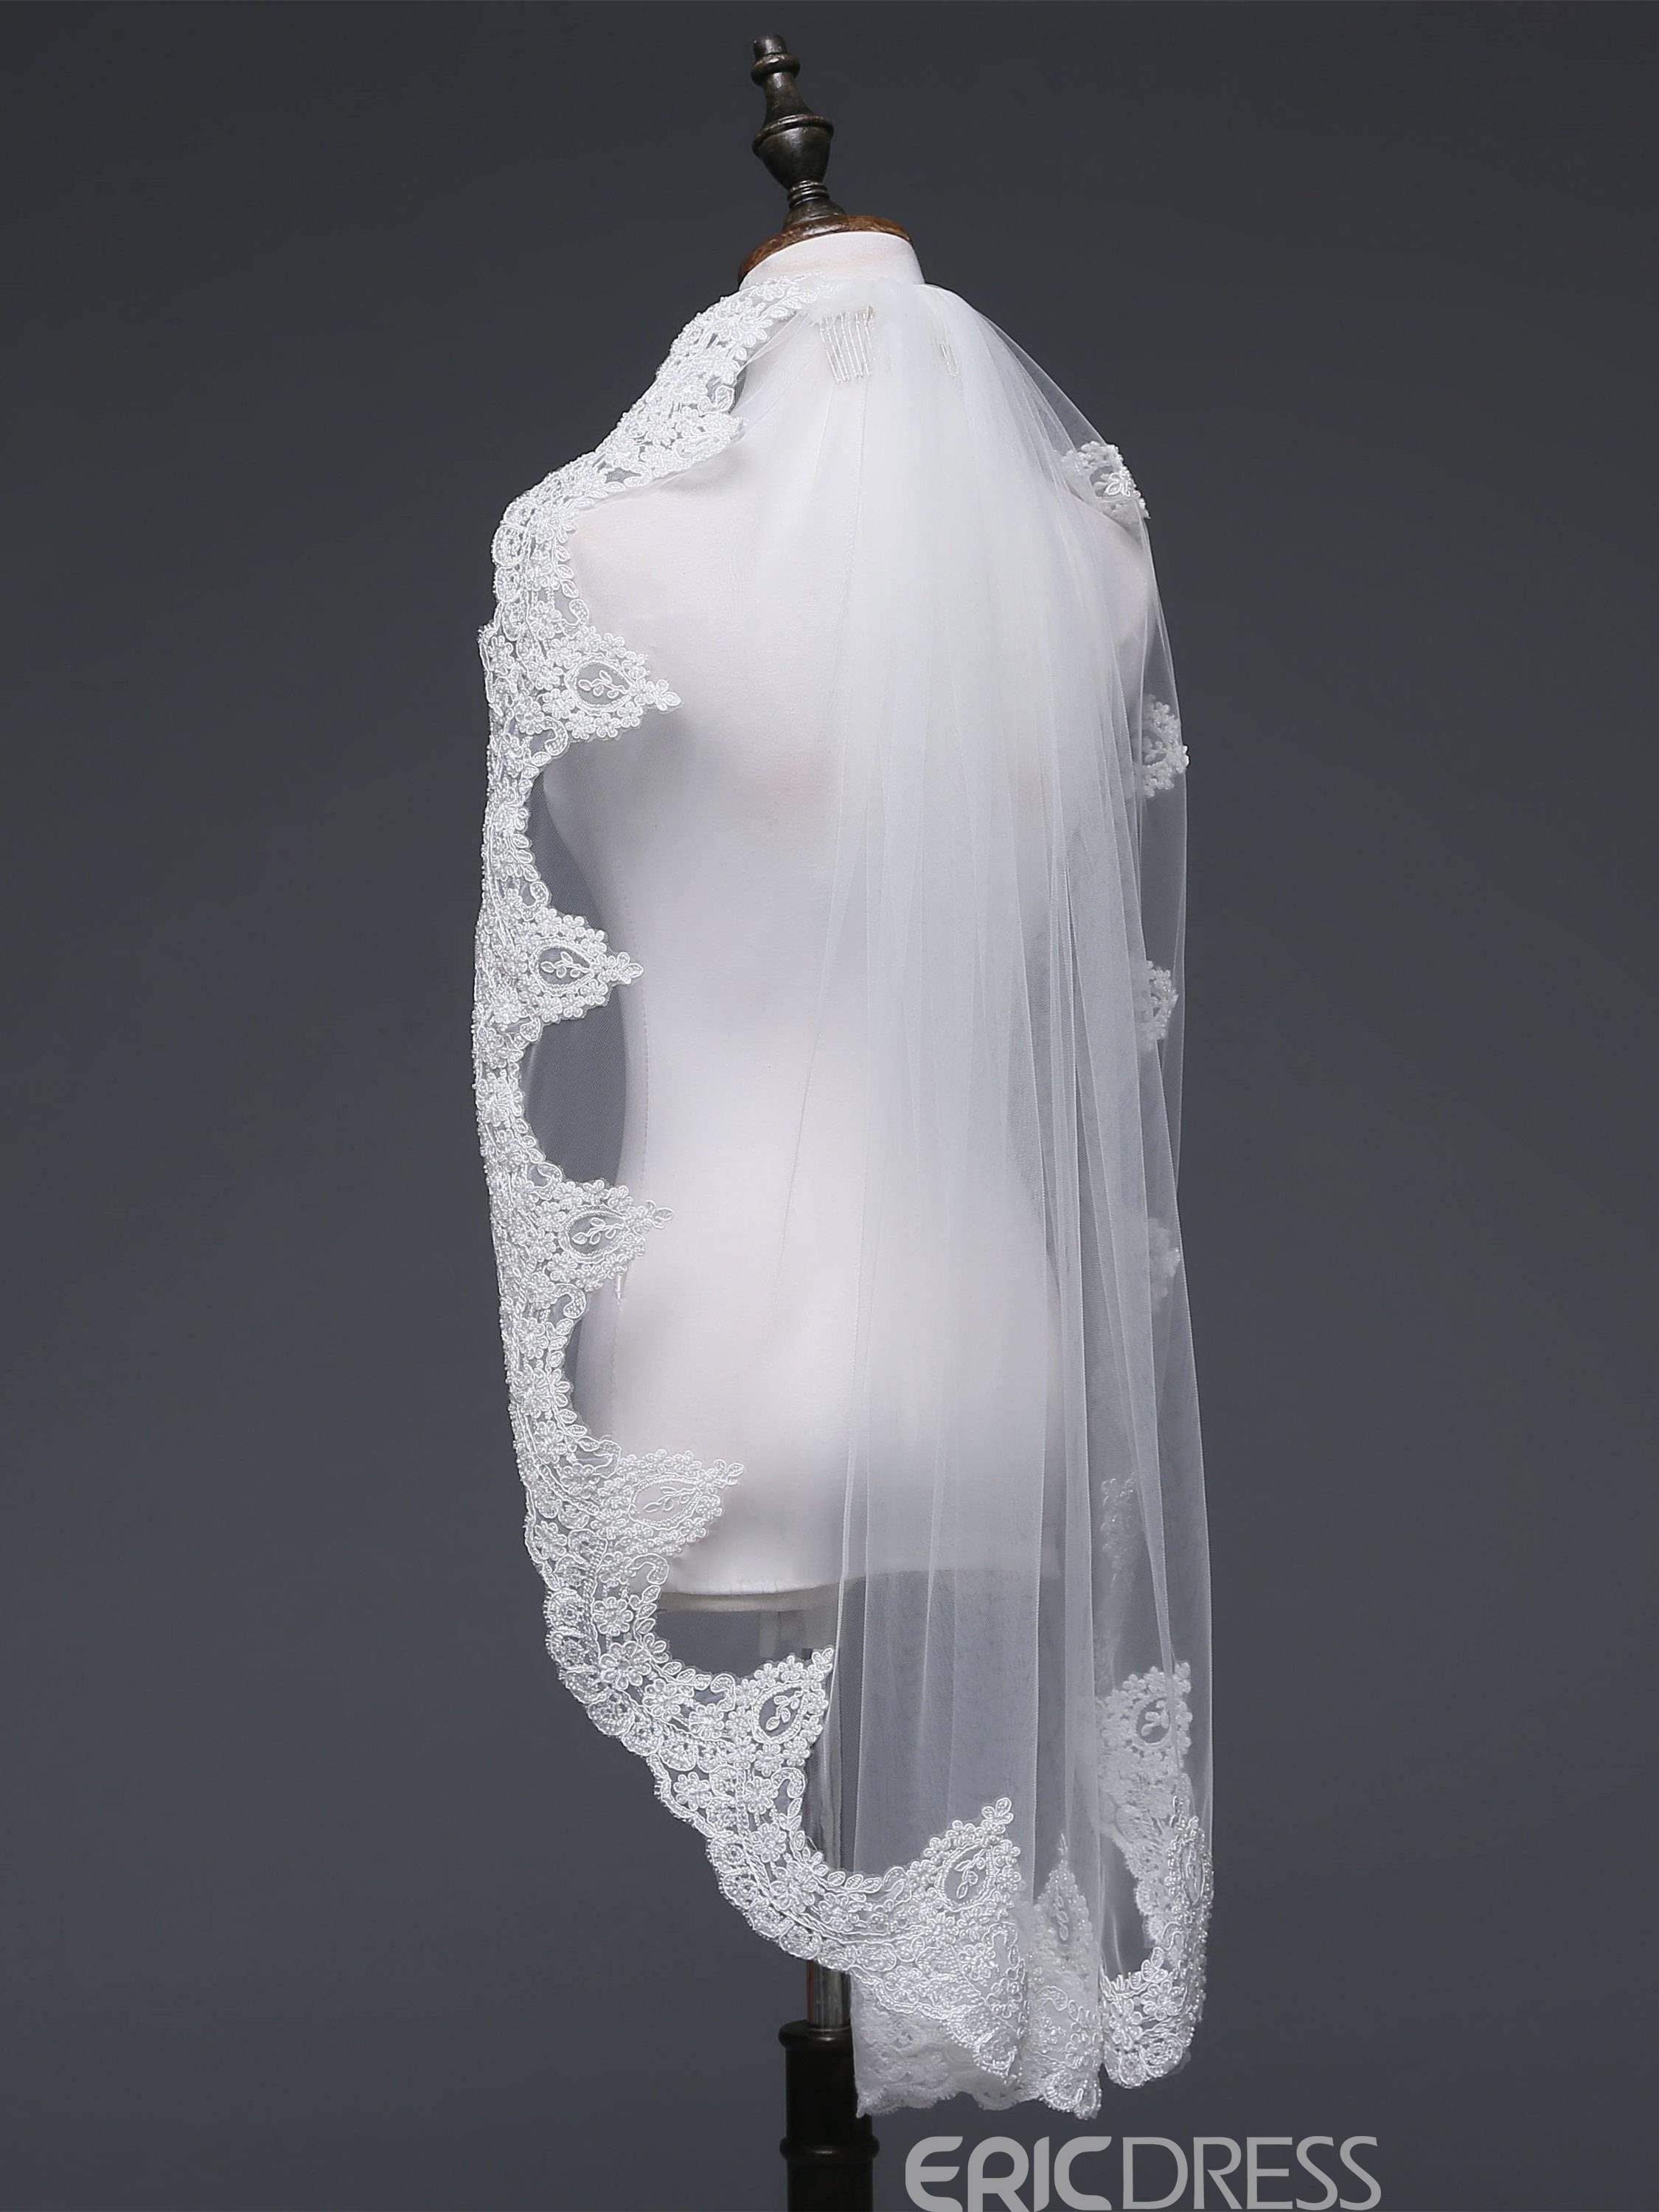 Ericdress One-Layer Applique Edge Elbow Wedding Veil